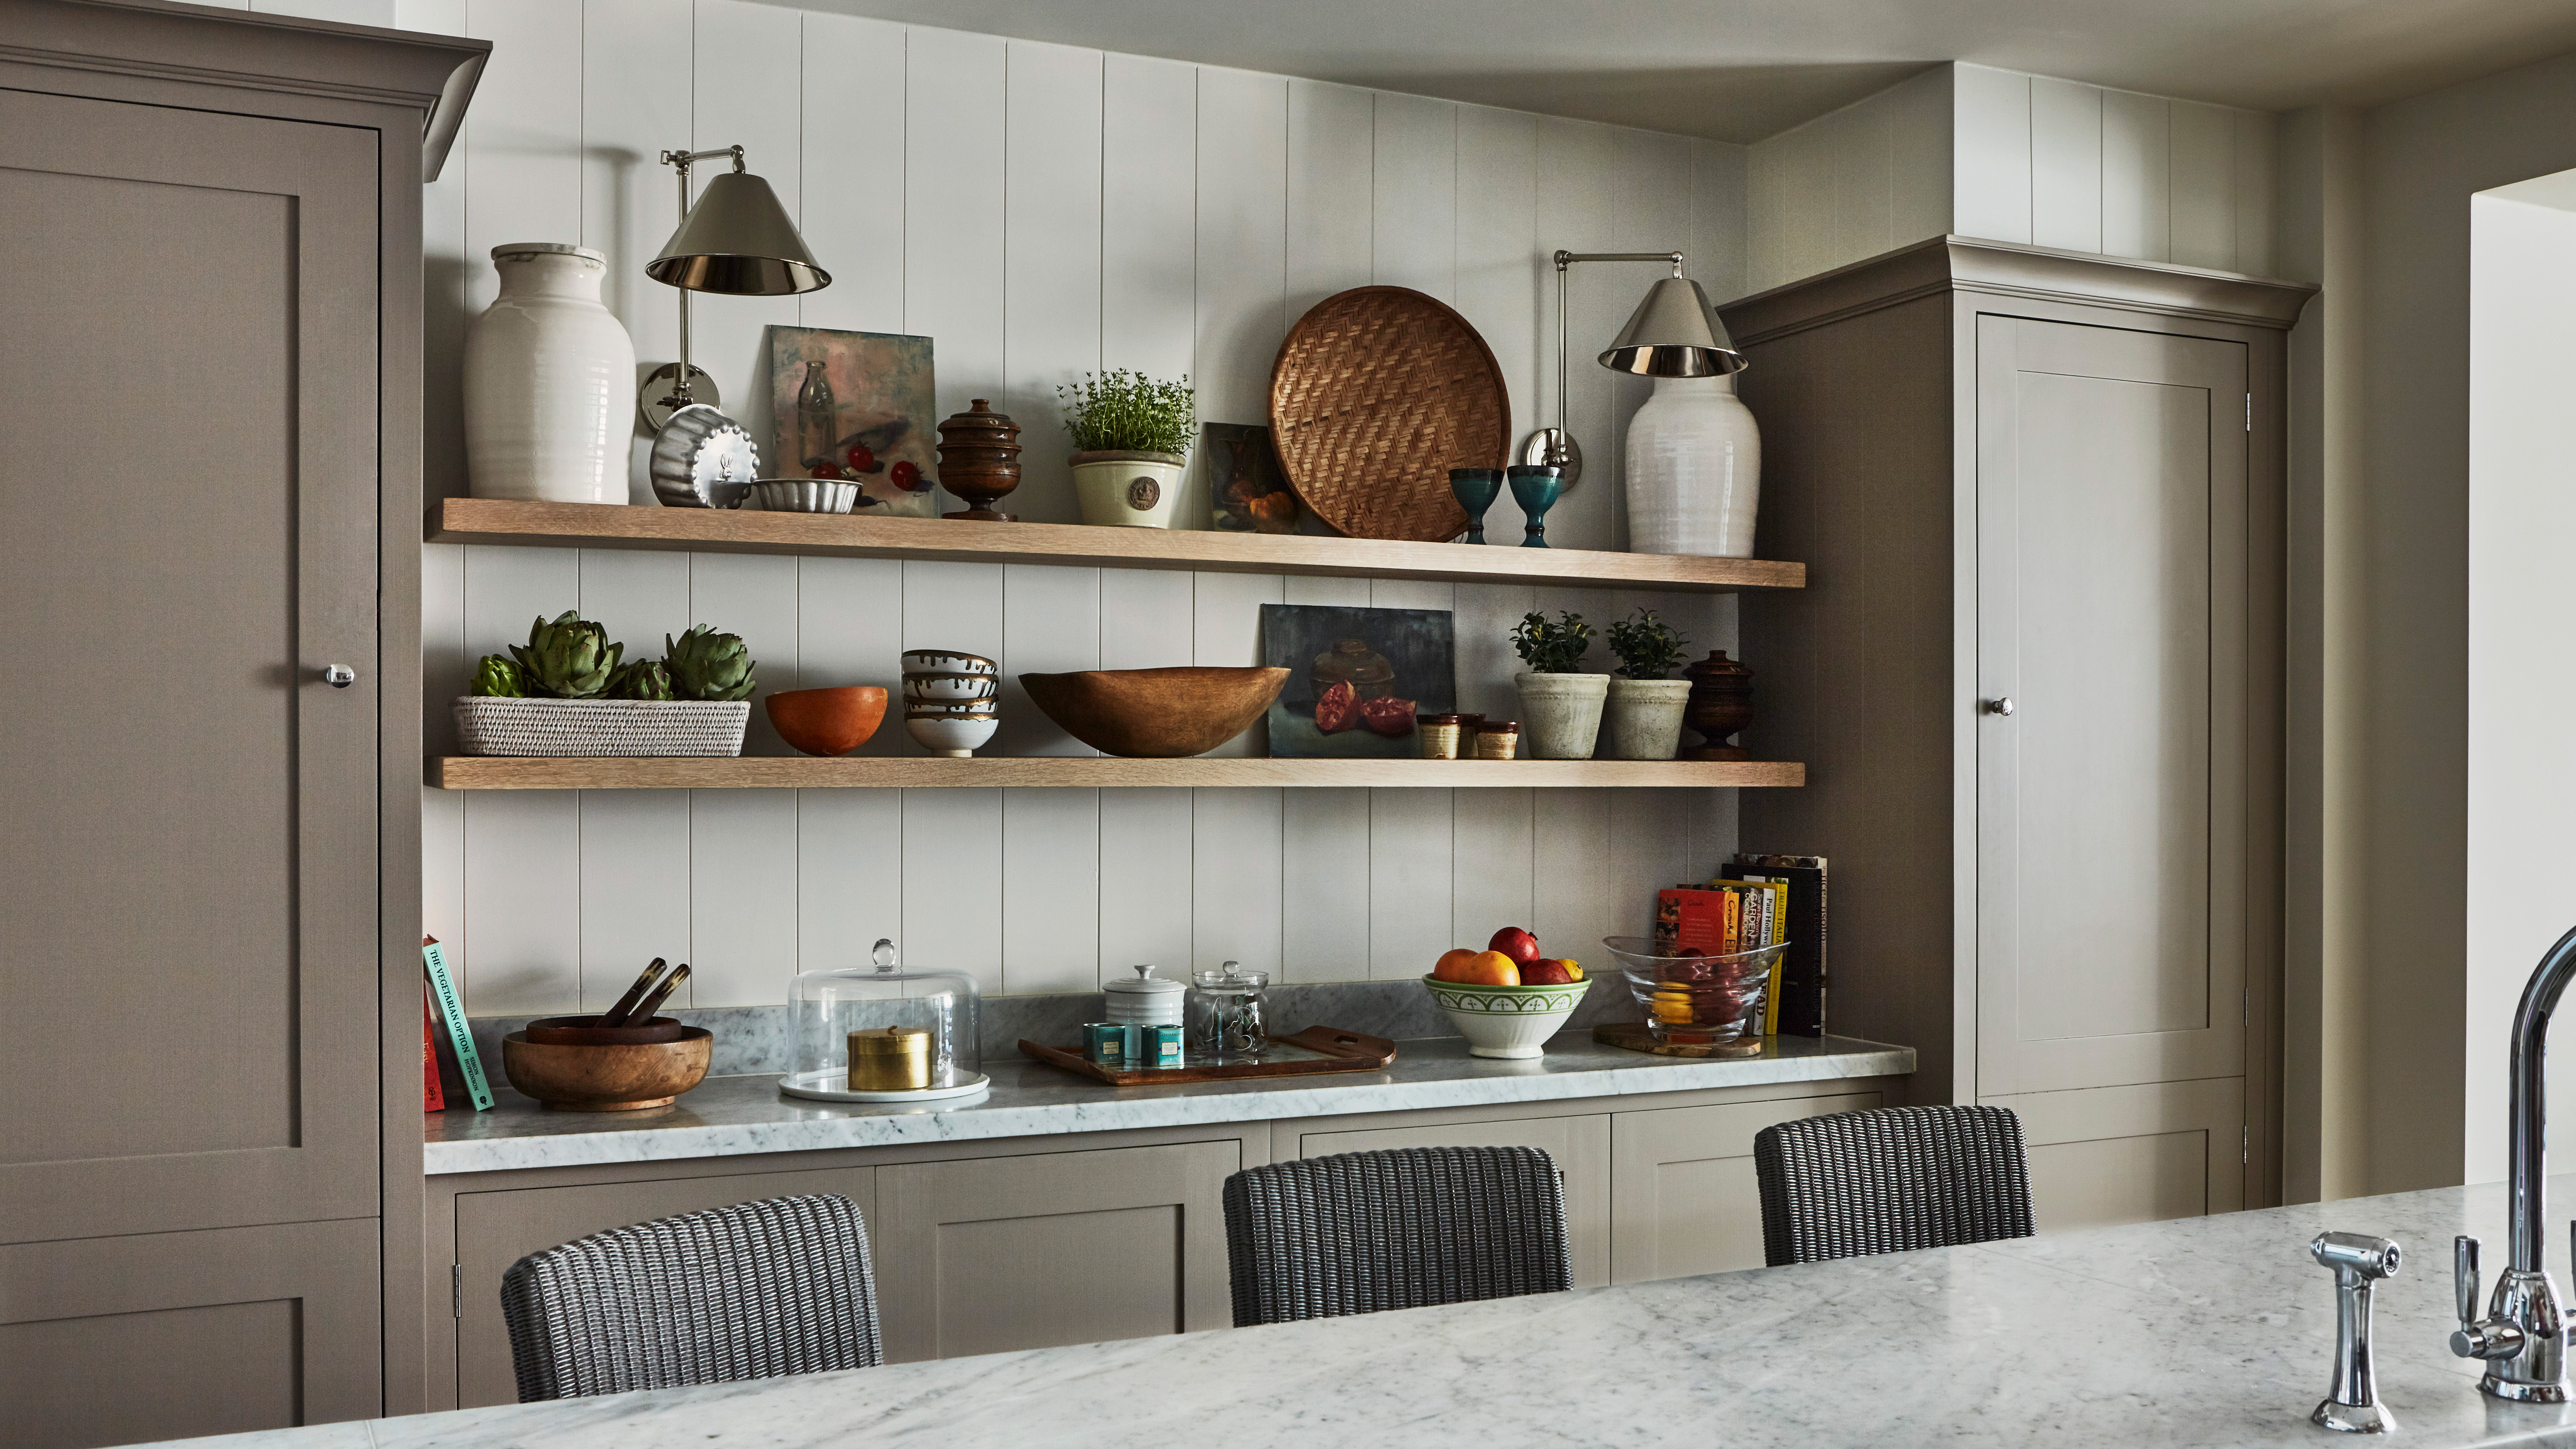 Kitchen Shelving Ideas 12 Ways To Boost Storage And Display Space Homes Gardens